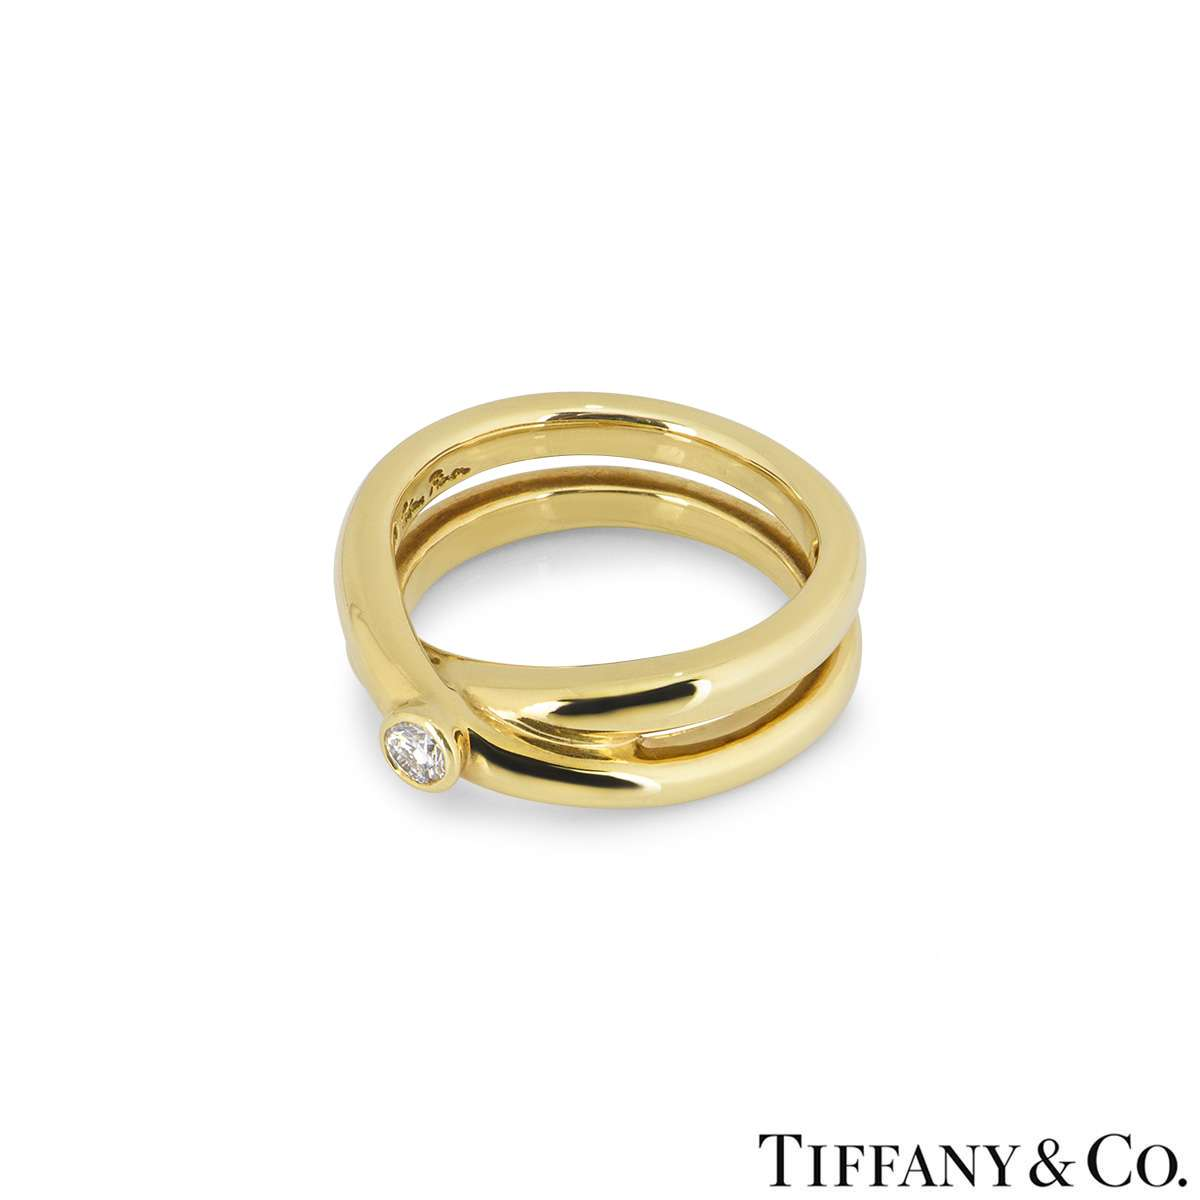 Tiffany & Co. Yellow Gold Paloma Picasso Ring